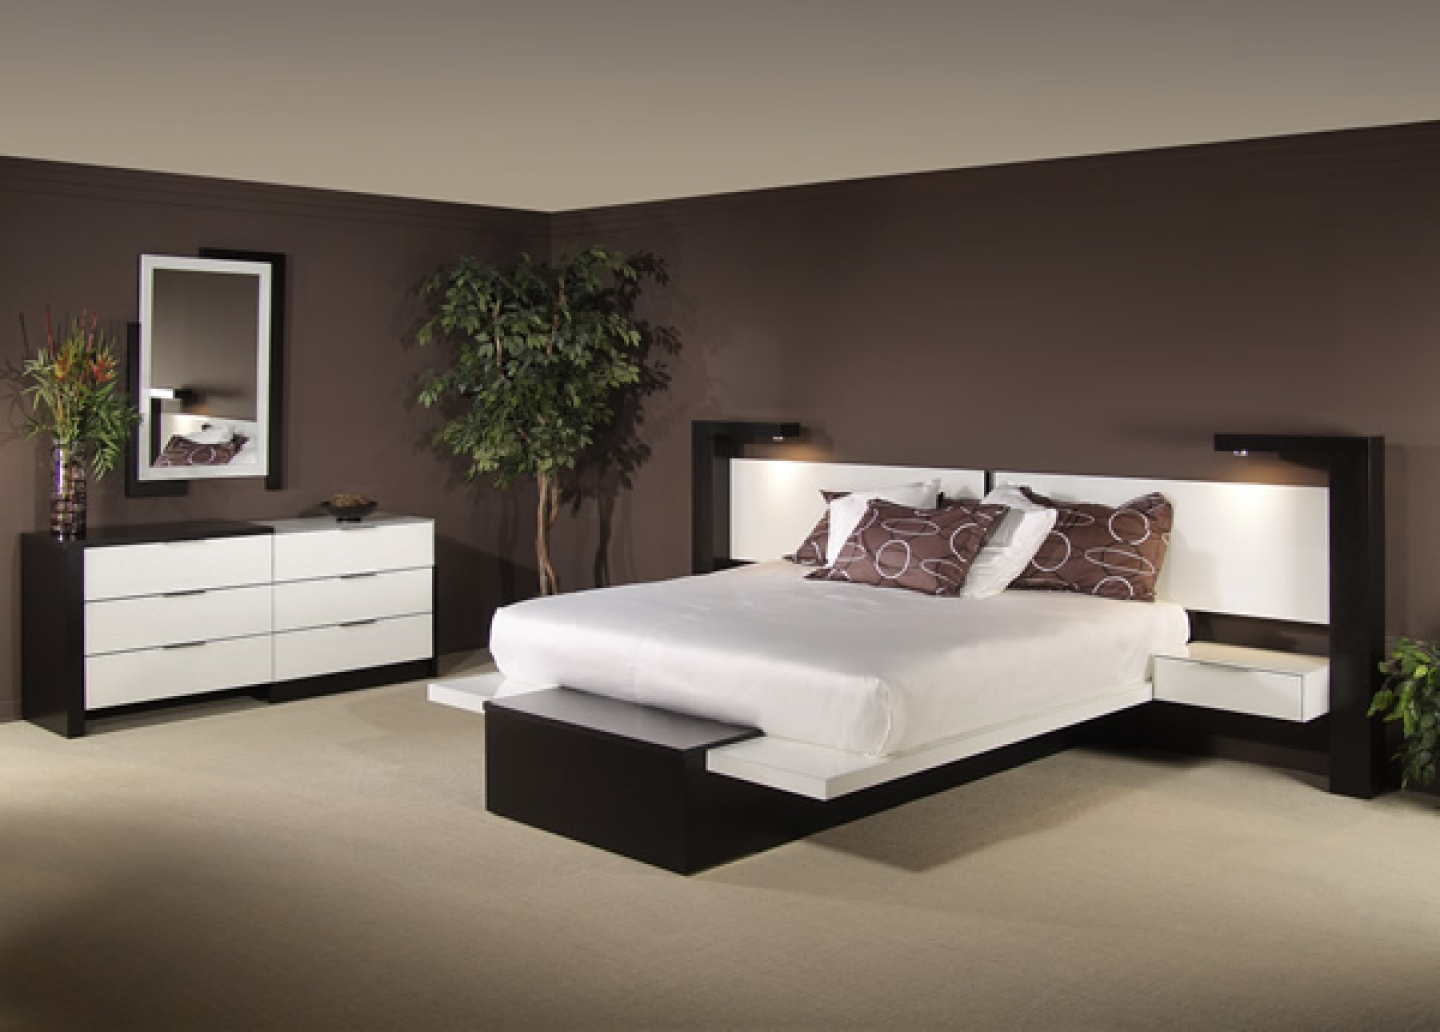 Bedroom Furniture Designs new designer bedroom furniture hd modern design home decor wallpaper bedroom  furniture NOLGBUY